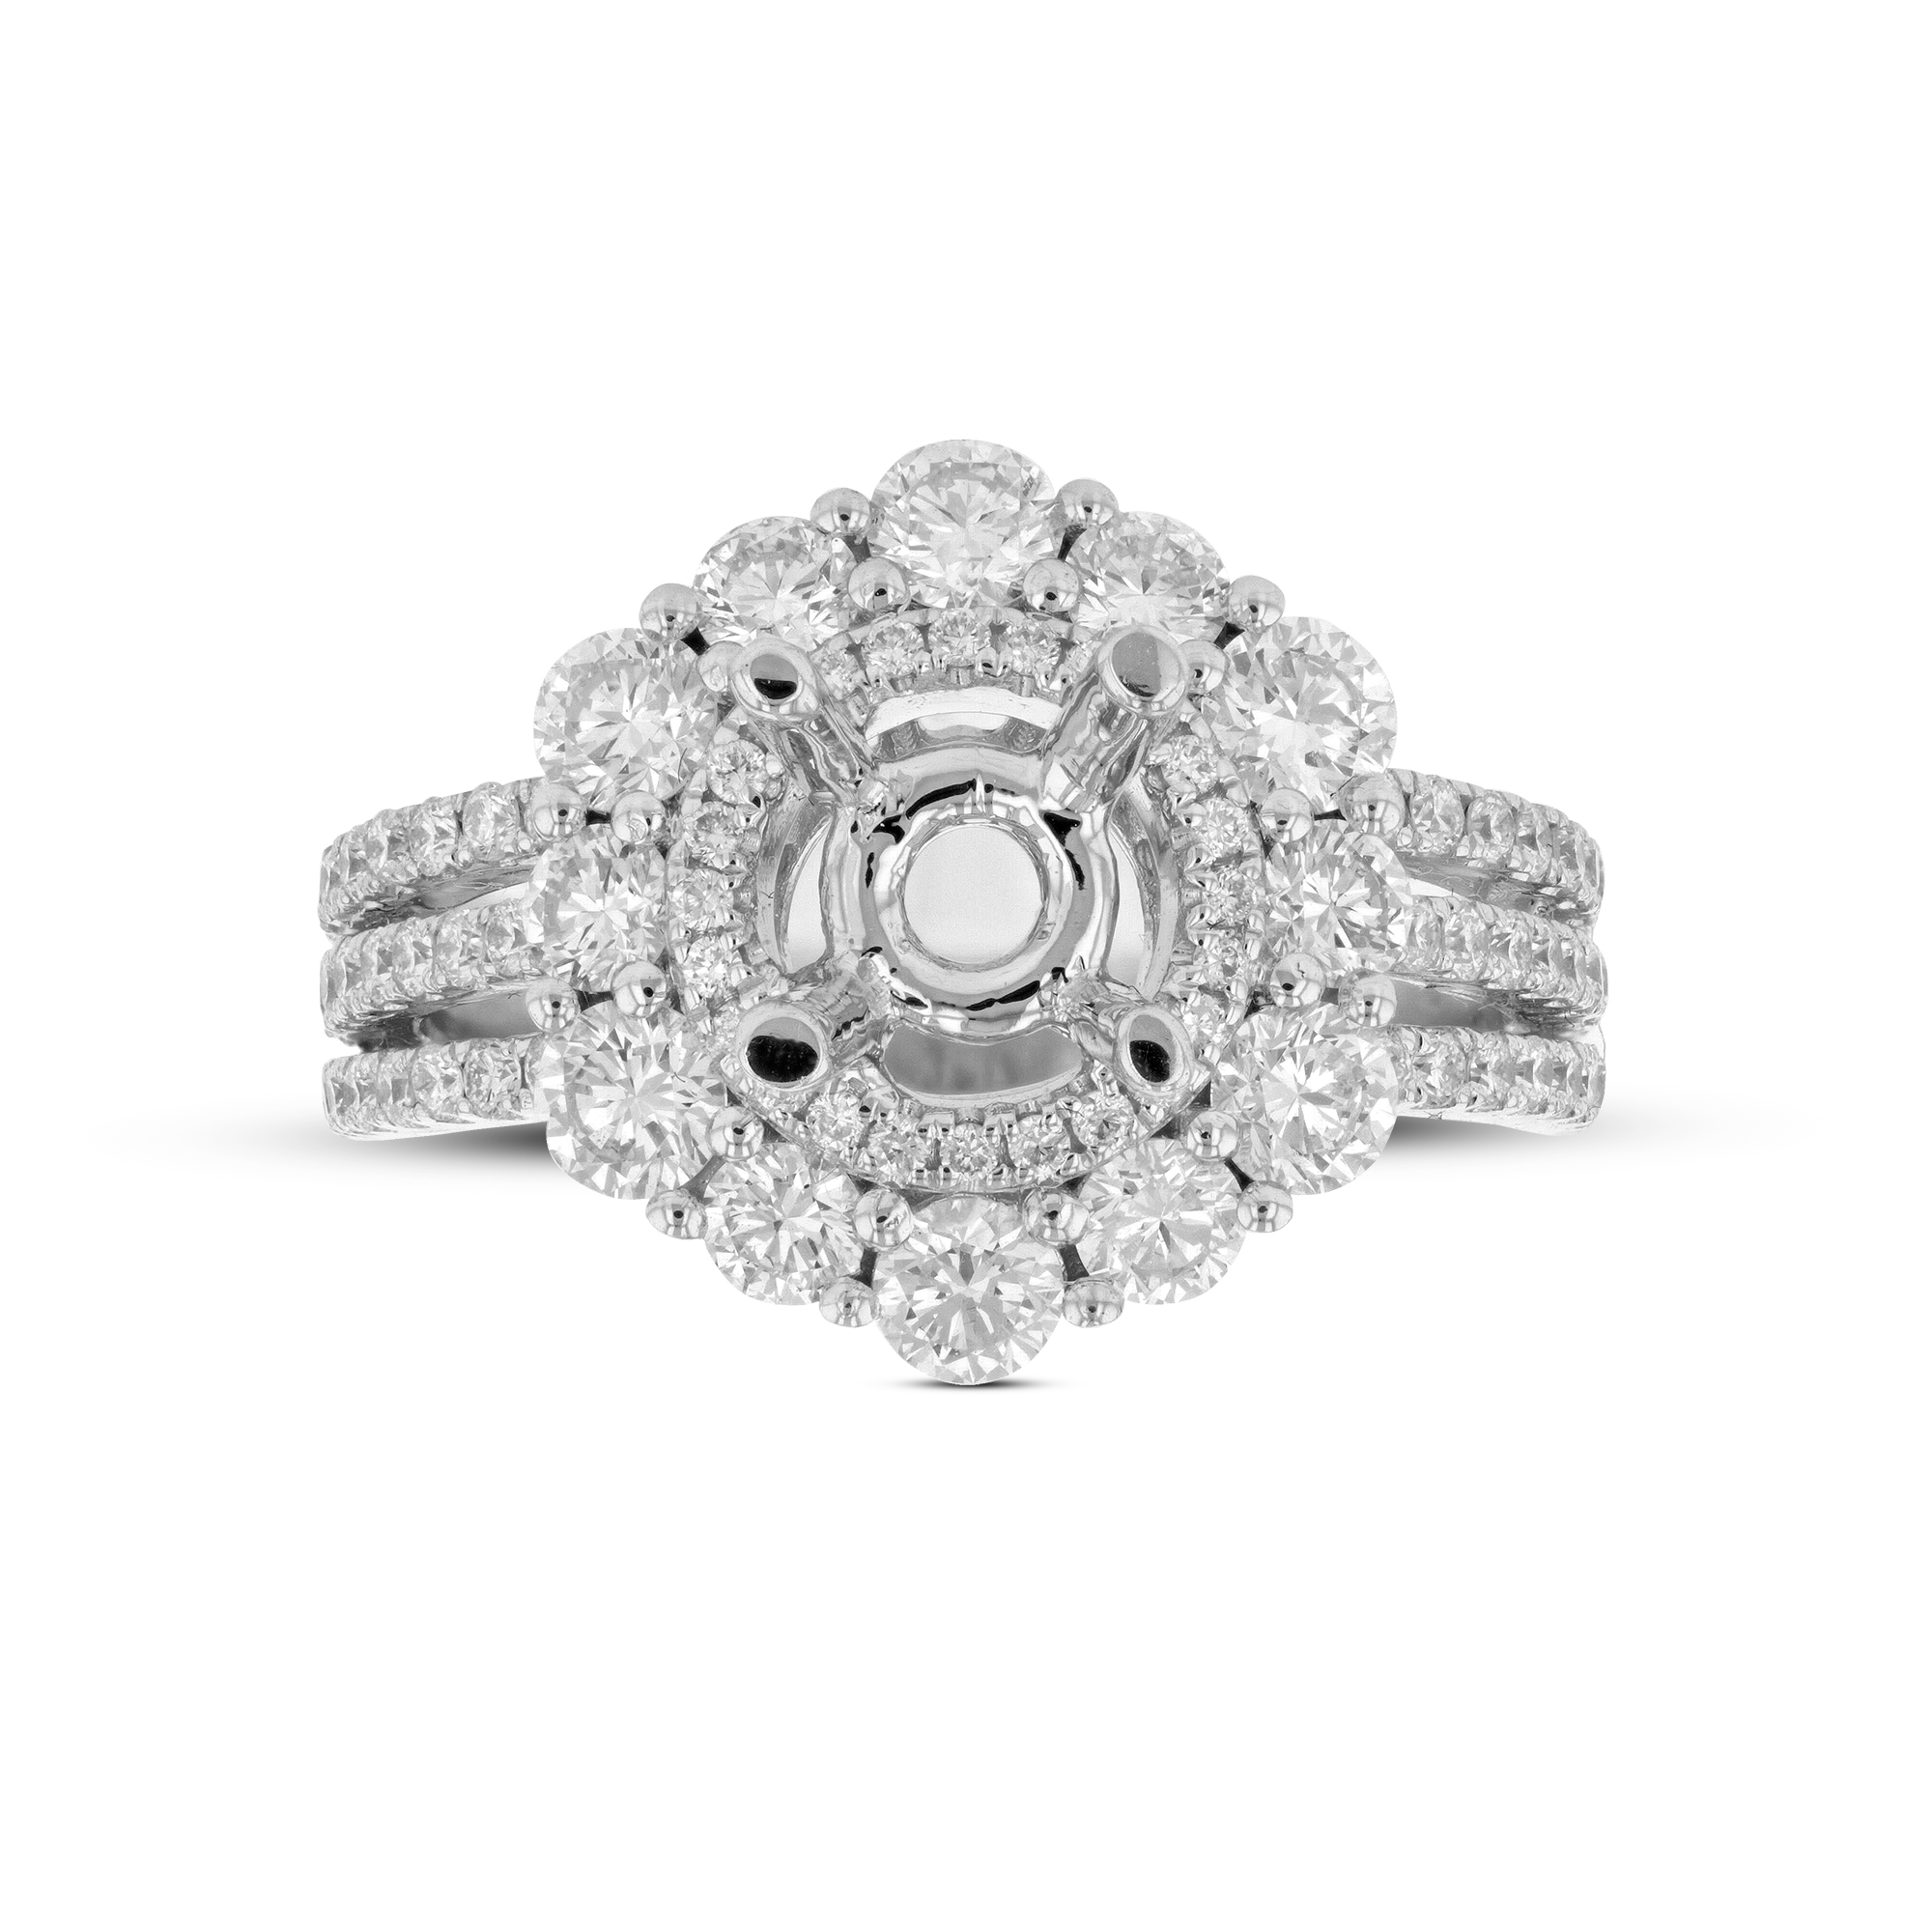 View 1.57ctw Diamond Semi Mount Engagement Ring in 18k White Gold